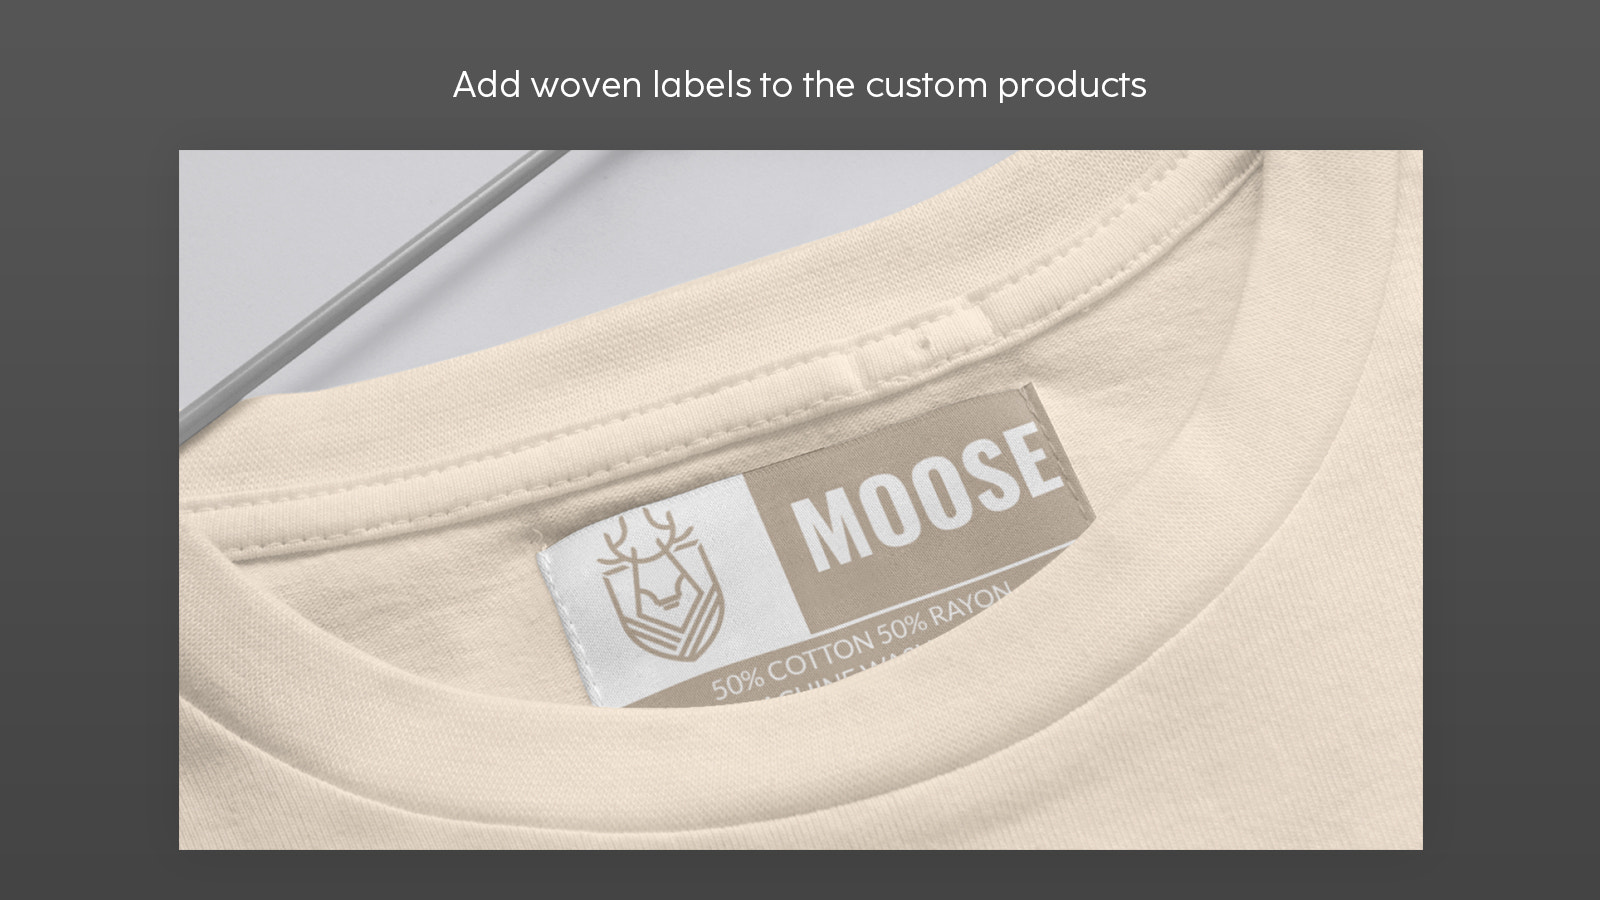 Add woven labels to the custom products